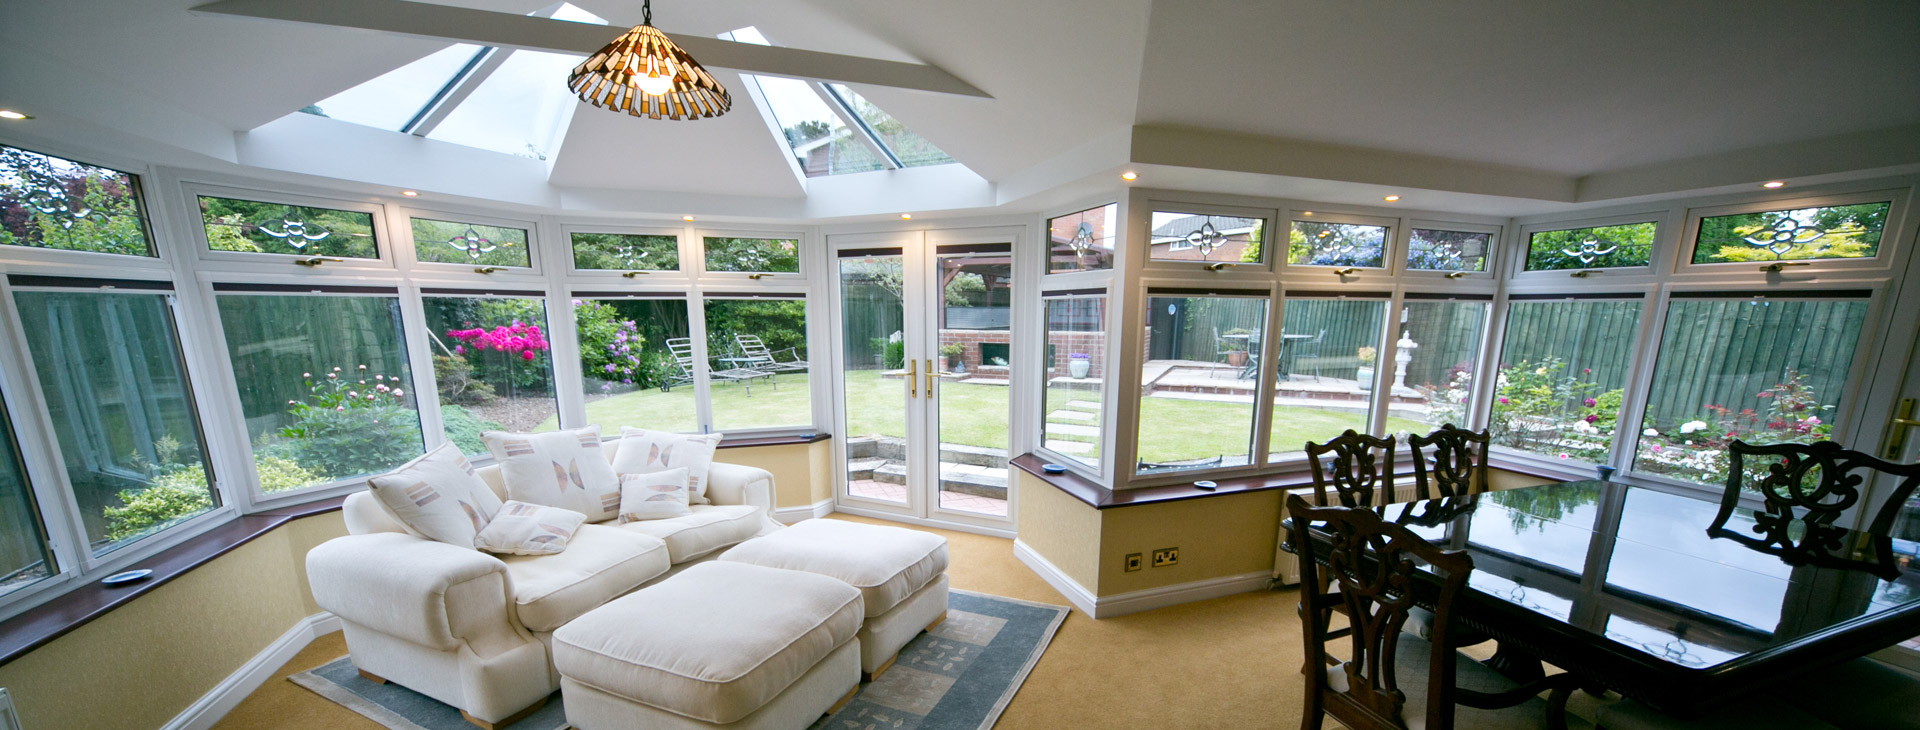 conservatories7-1920x730